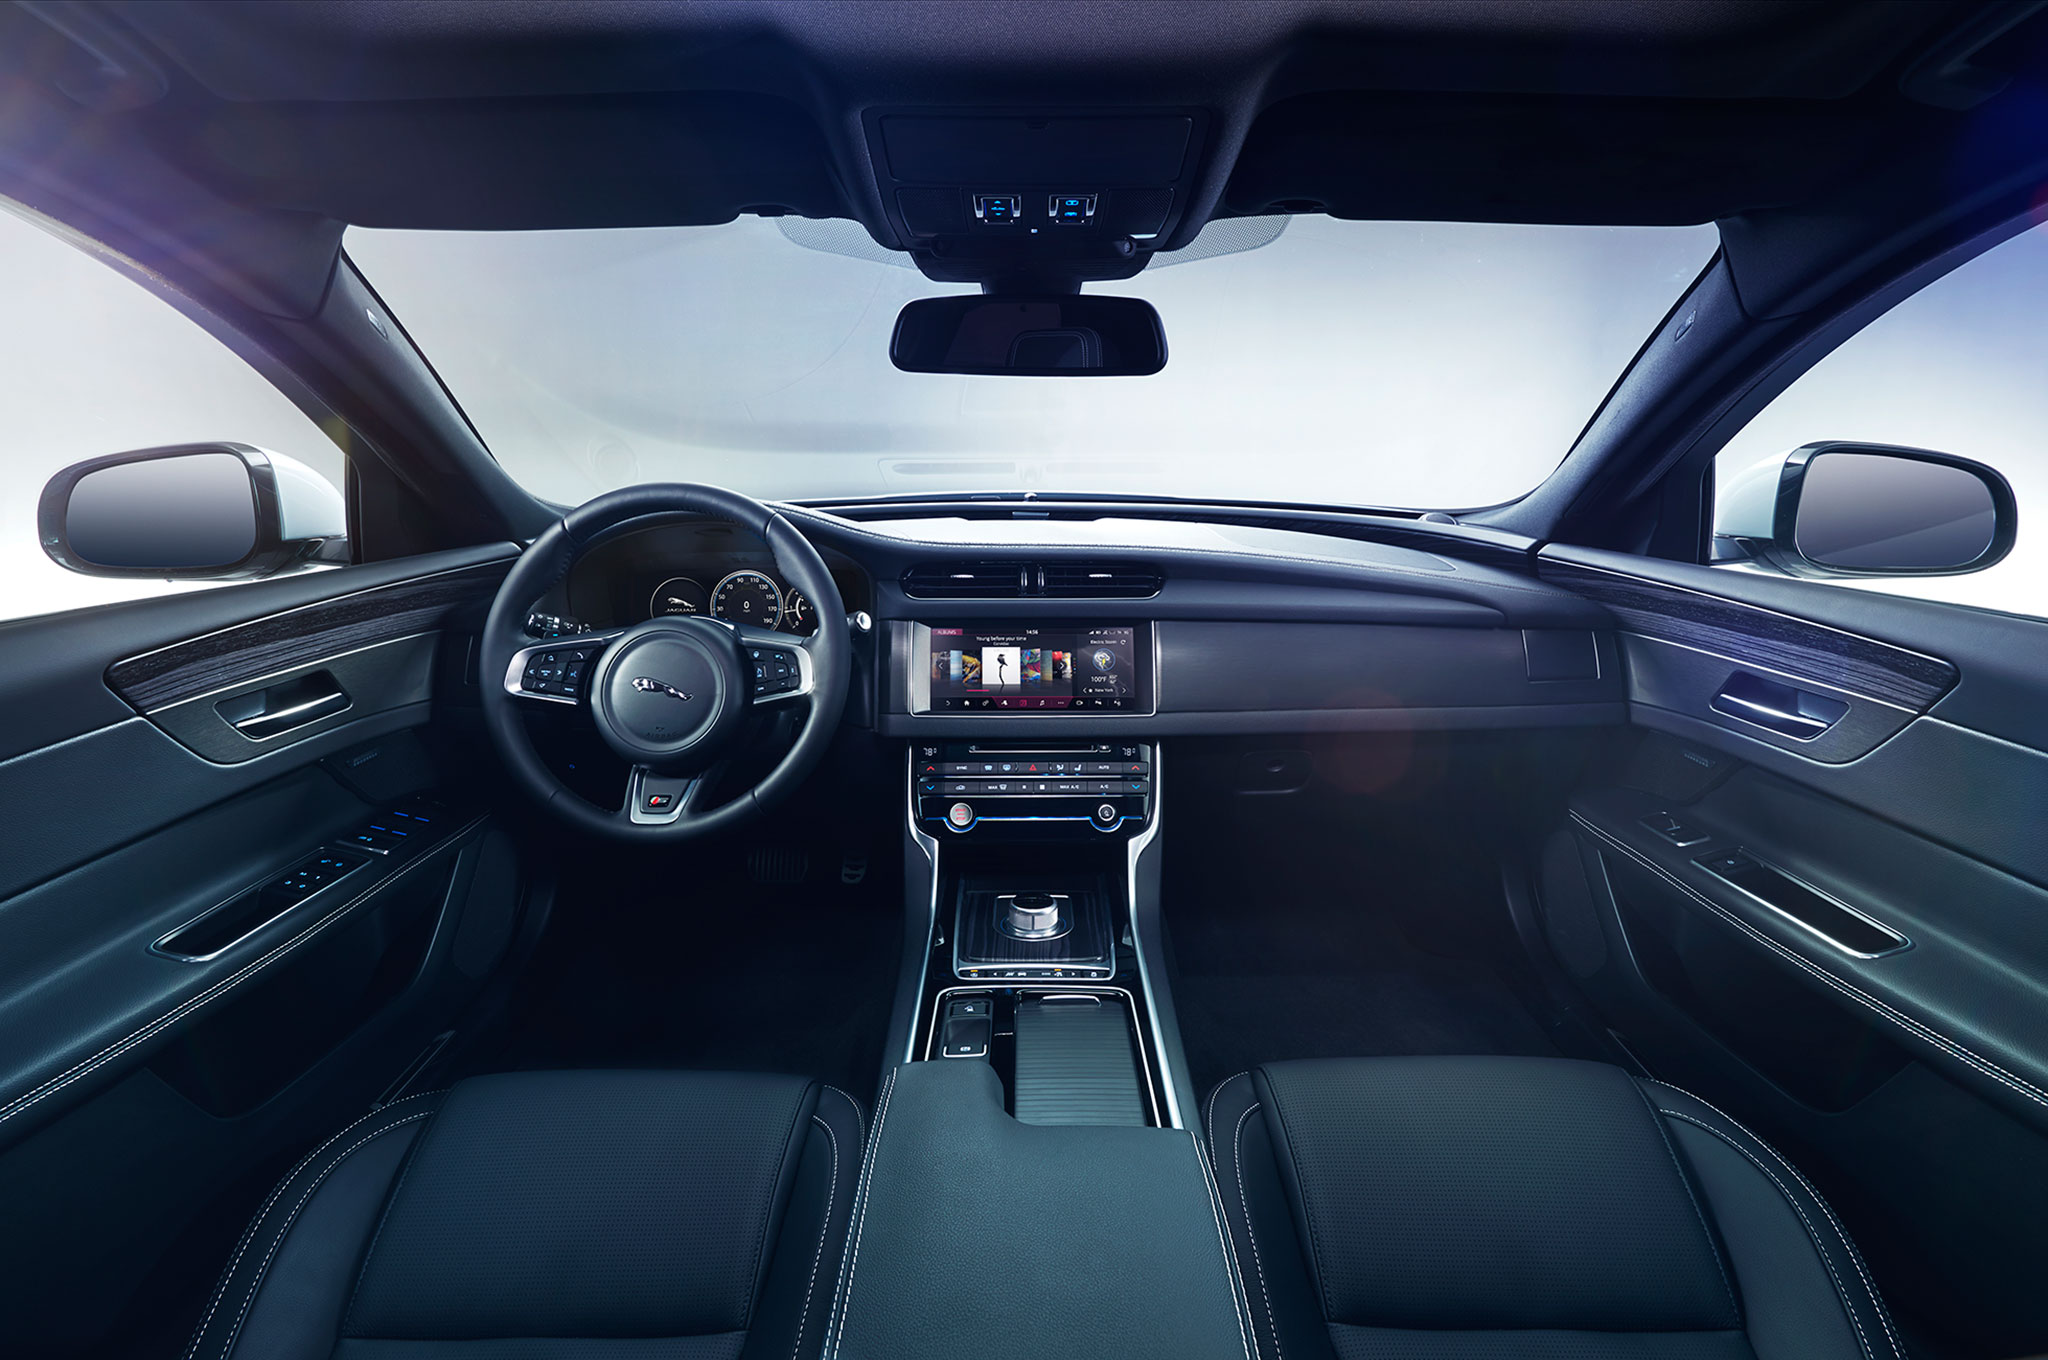 jaguar car xf new interior inside official first news the magazine at look s by pictures